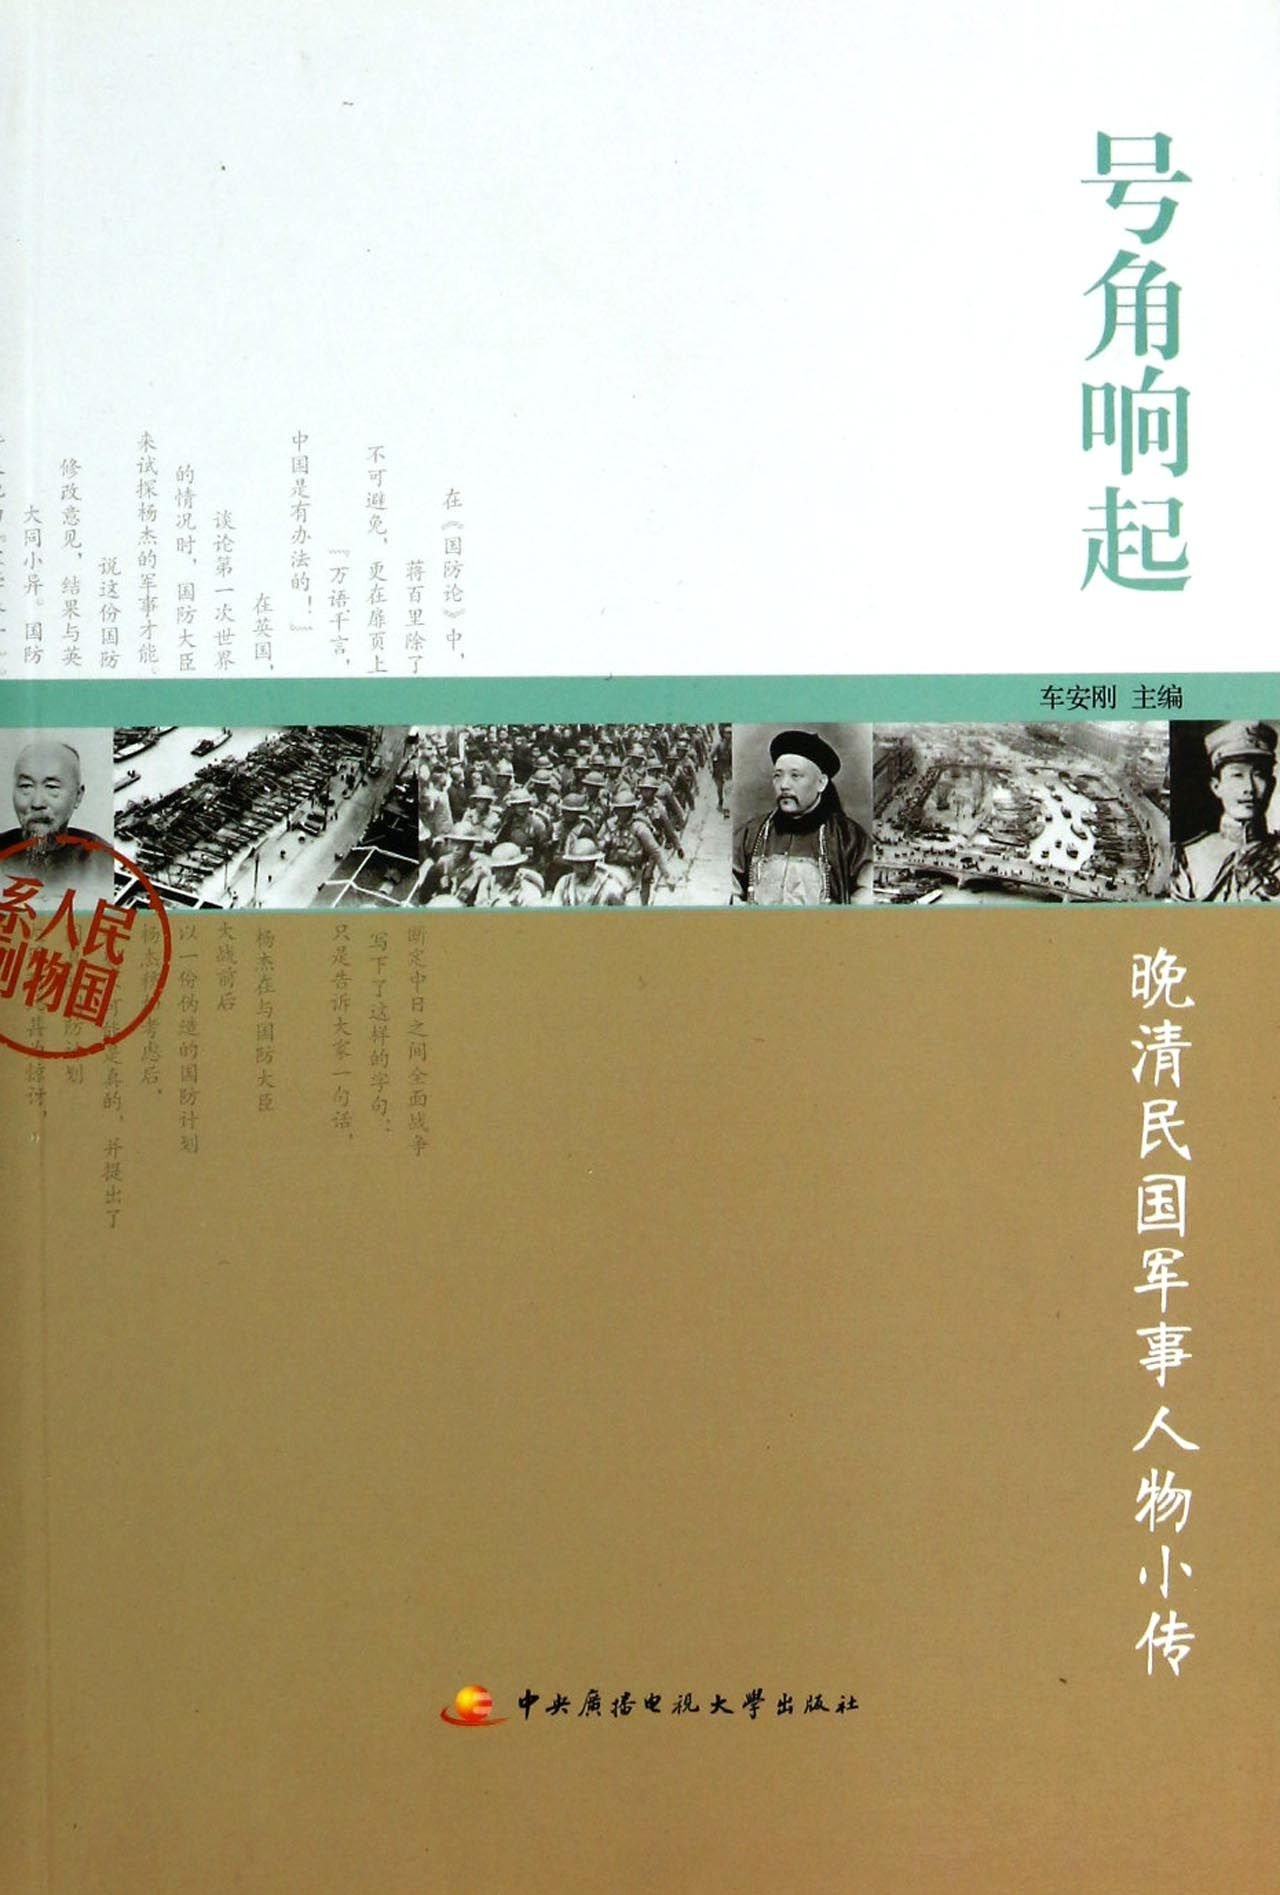 Republican People Series : horn sounded late Qing military figures Biography(Chinese Edition) PDF